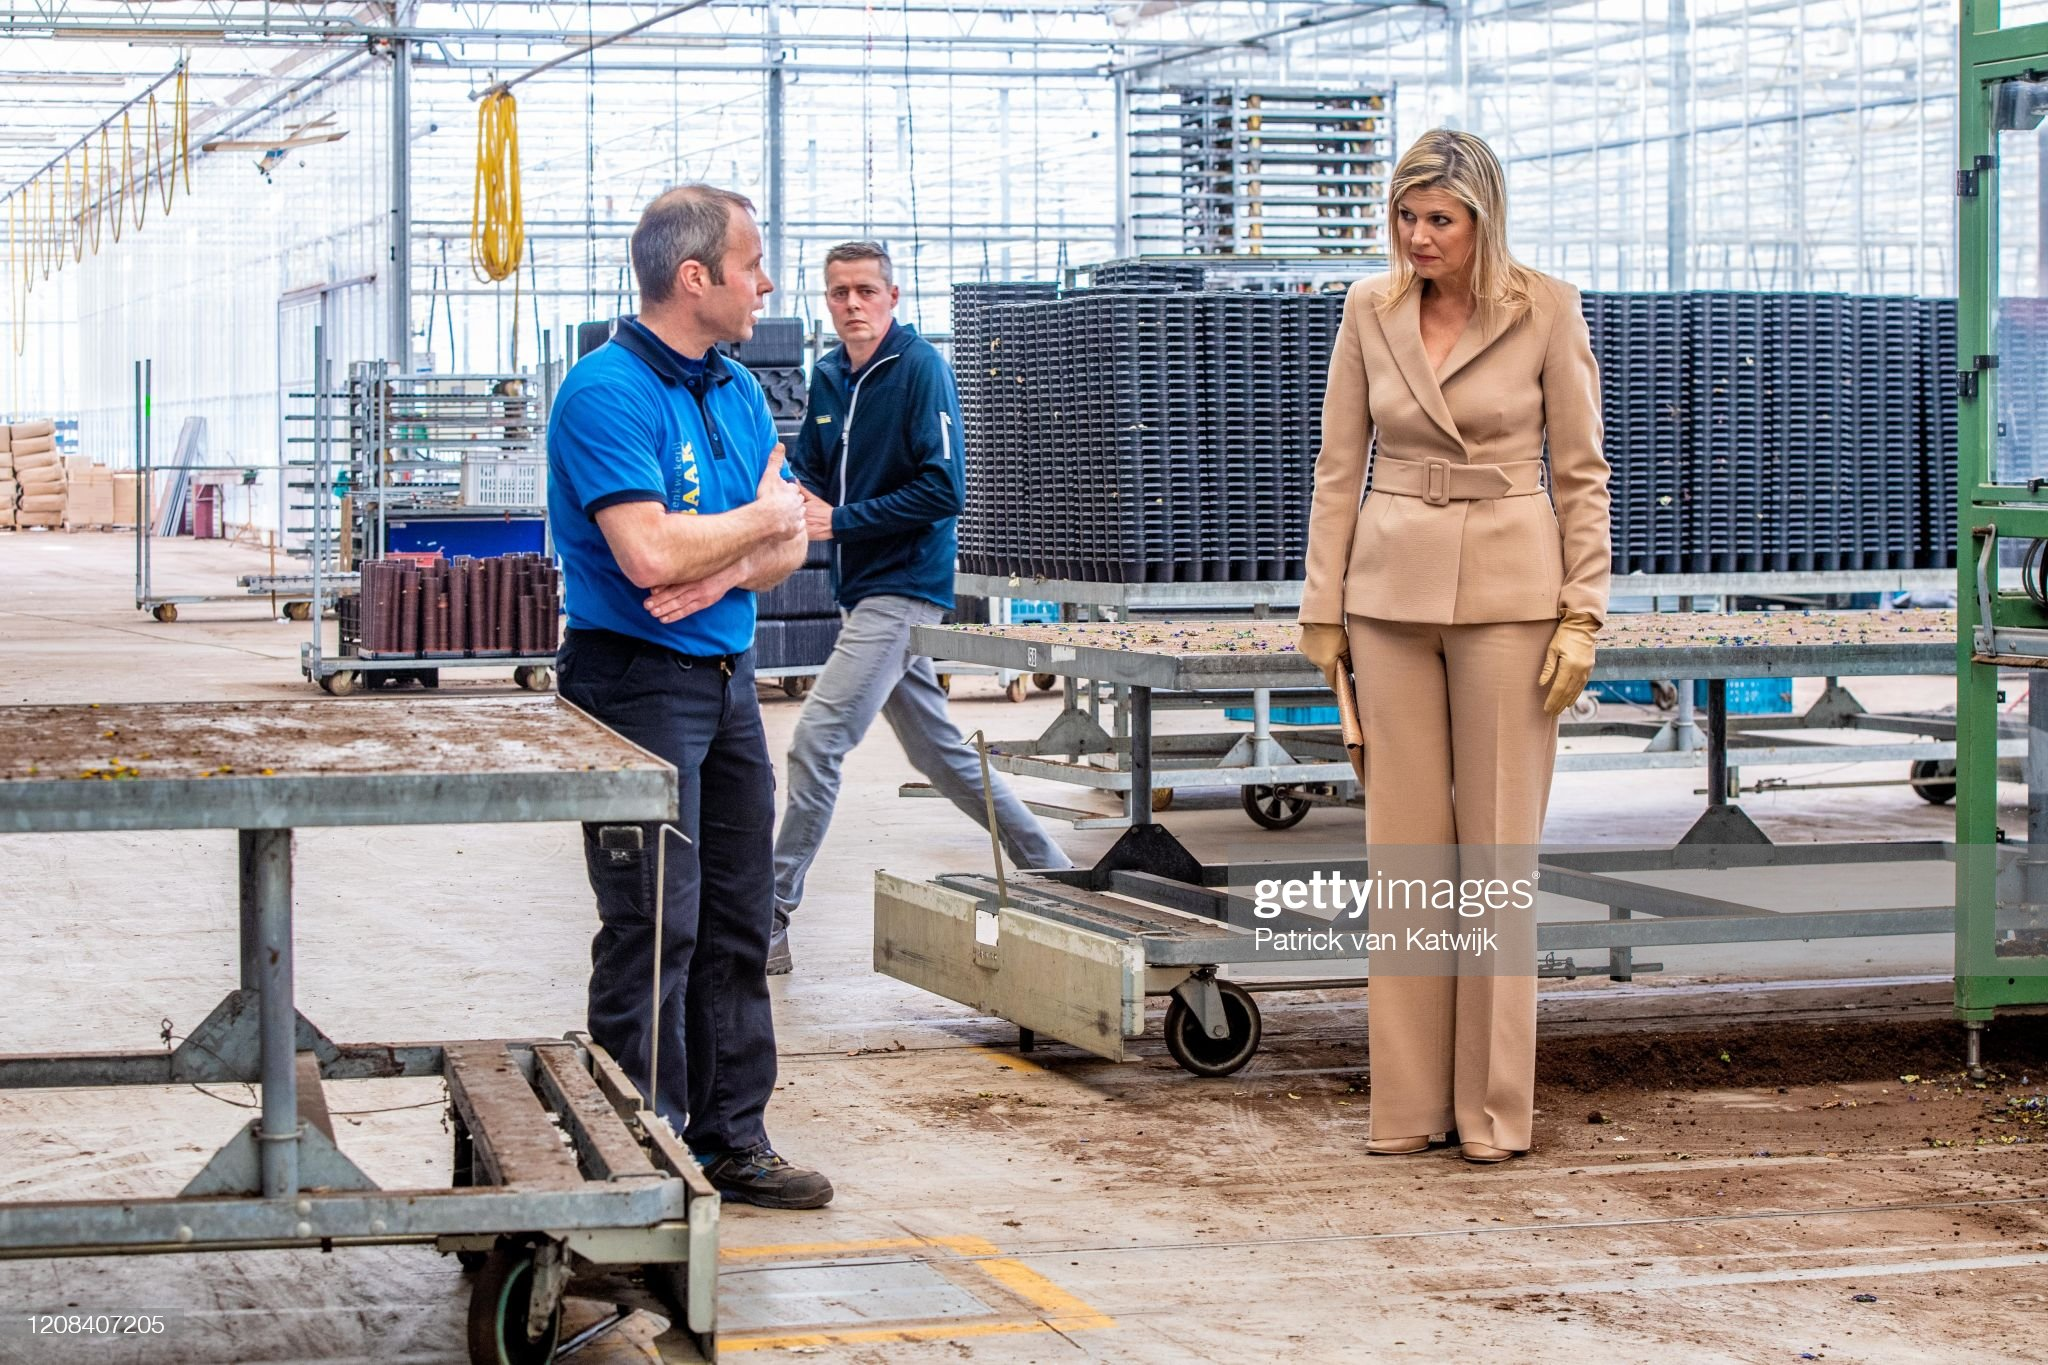 https://media.gettyimages.com/photos/queen-maxima-of-the-netherlands-visits-zuidbaak-floriculture-company-picture-id1208407205?s=2048x2048